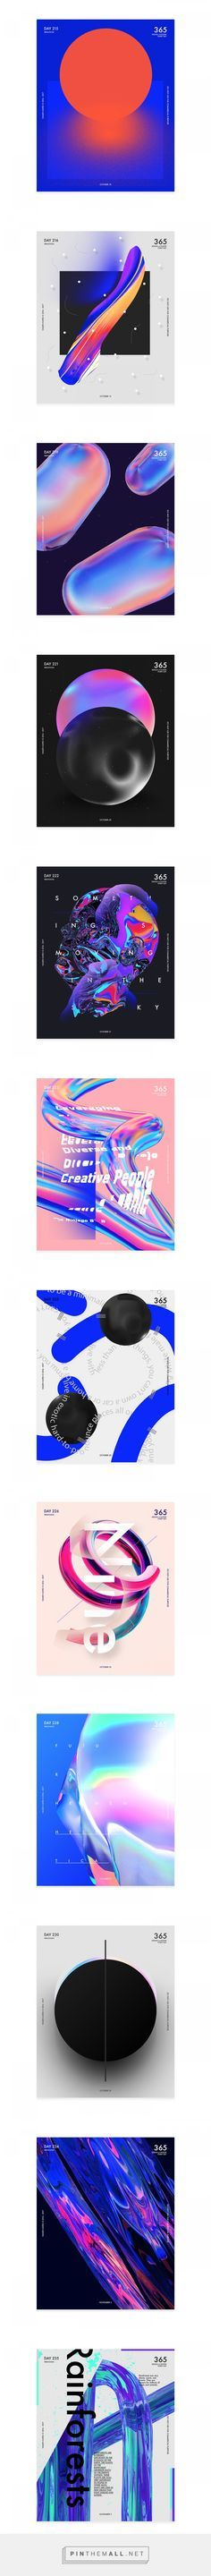 Baugasm Series - Pack 3 https://www.behance.net/gallery/45112219/Baugasm-Series-Pack-3 - created via https://pinthemall.net